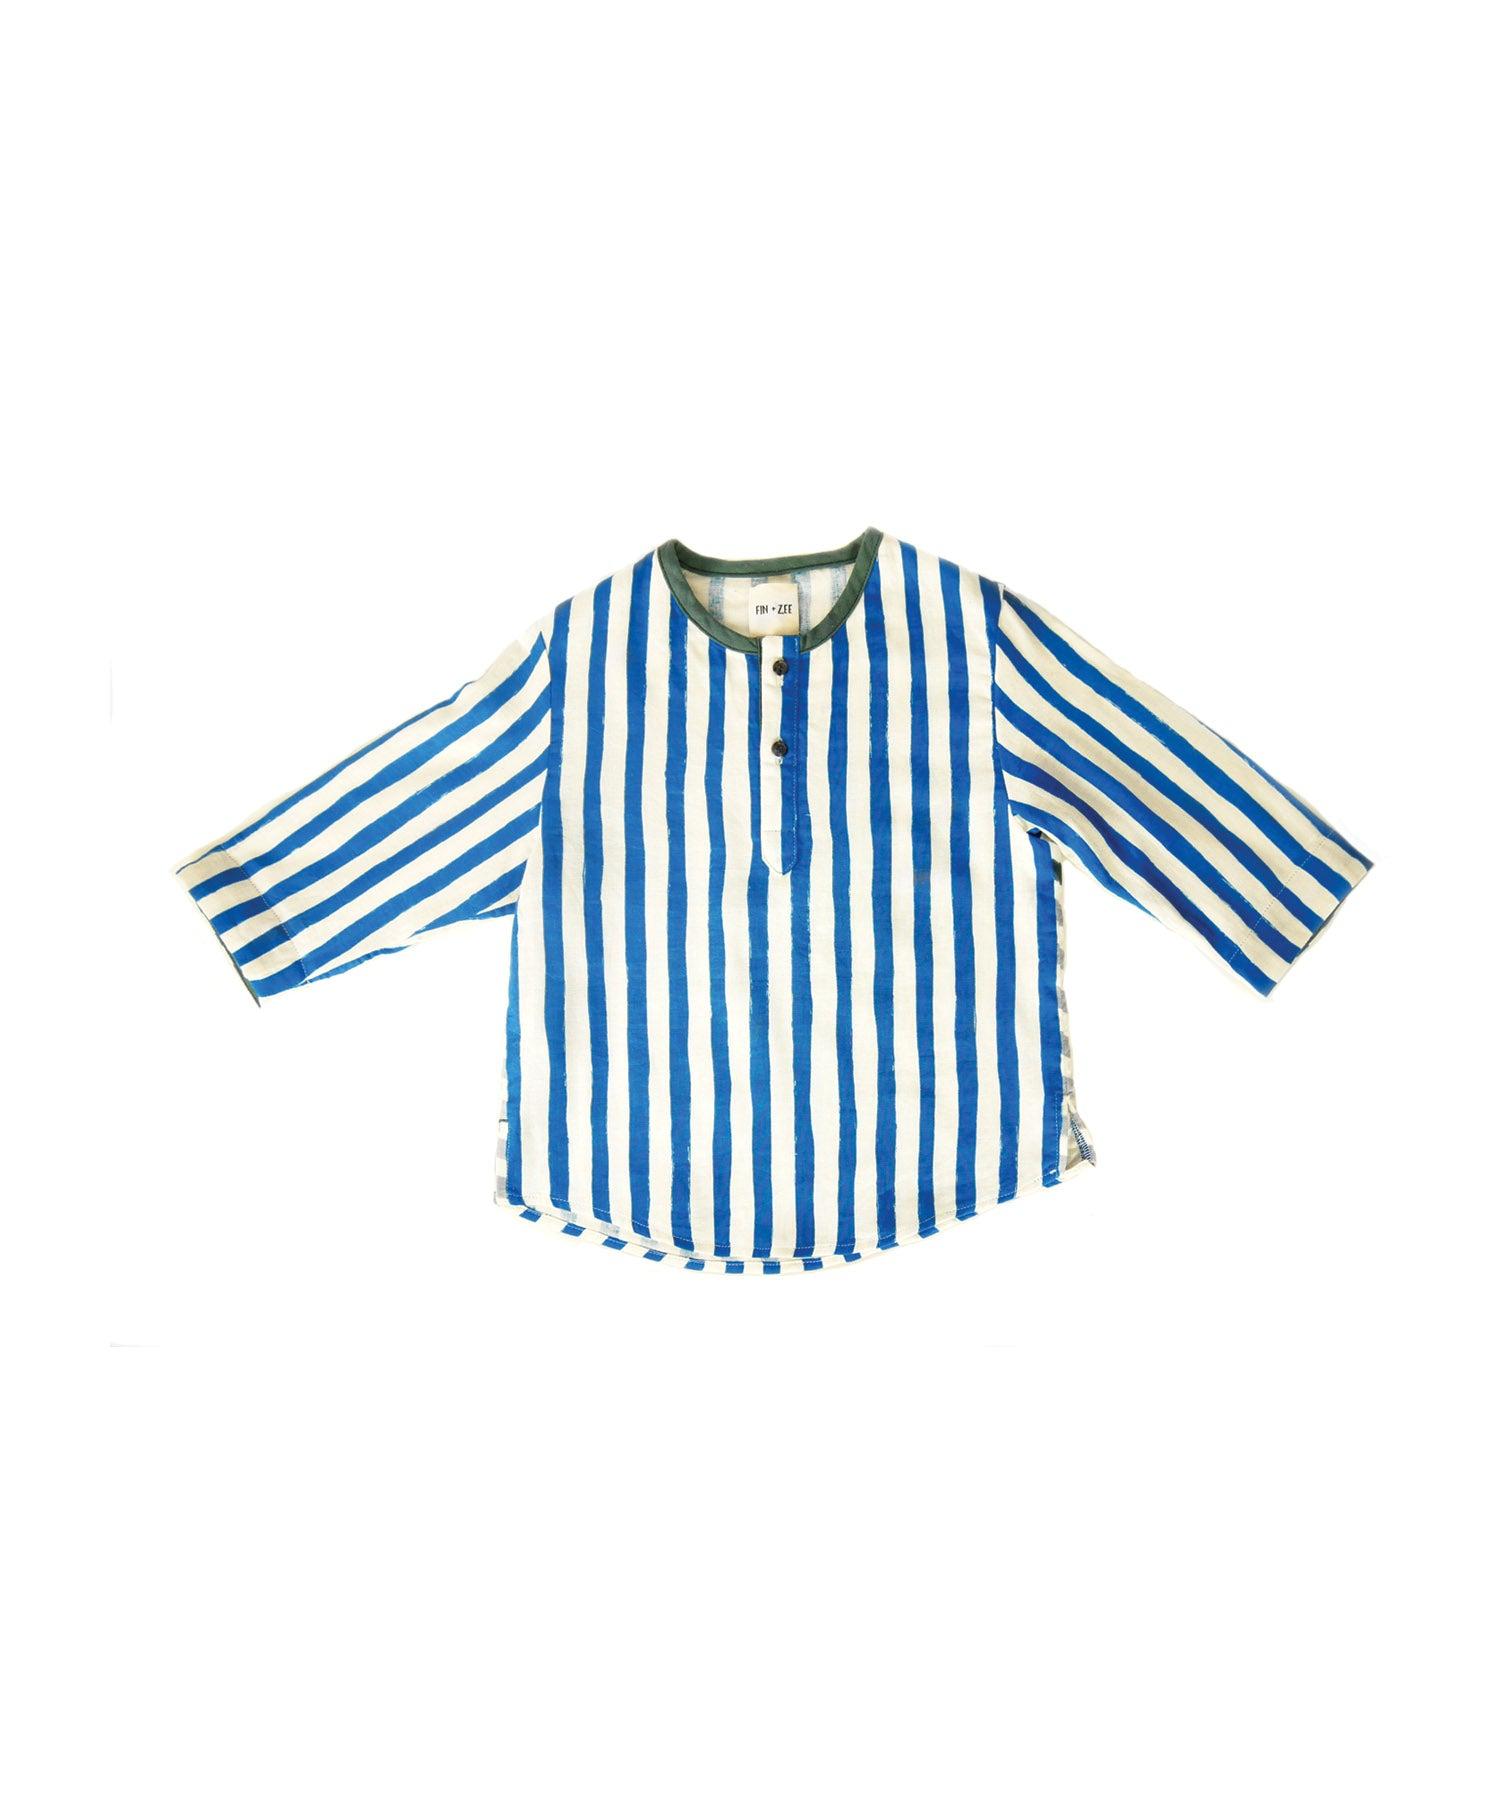 baby blue striped shirt